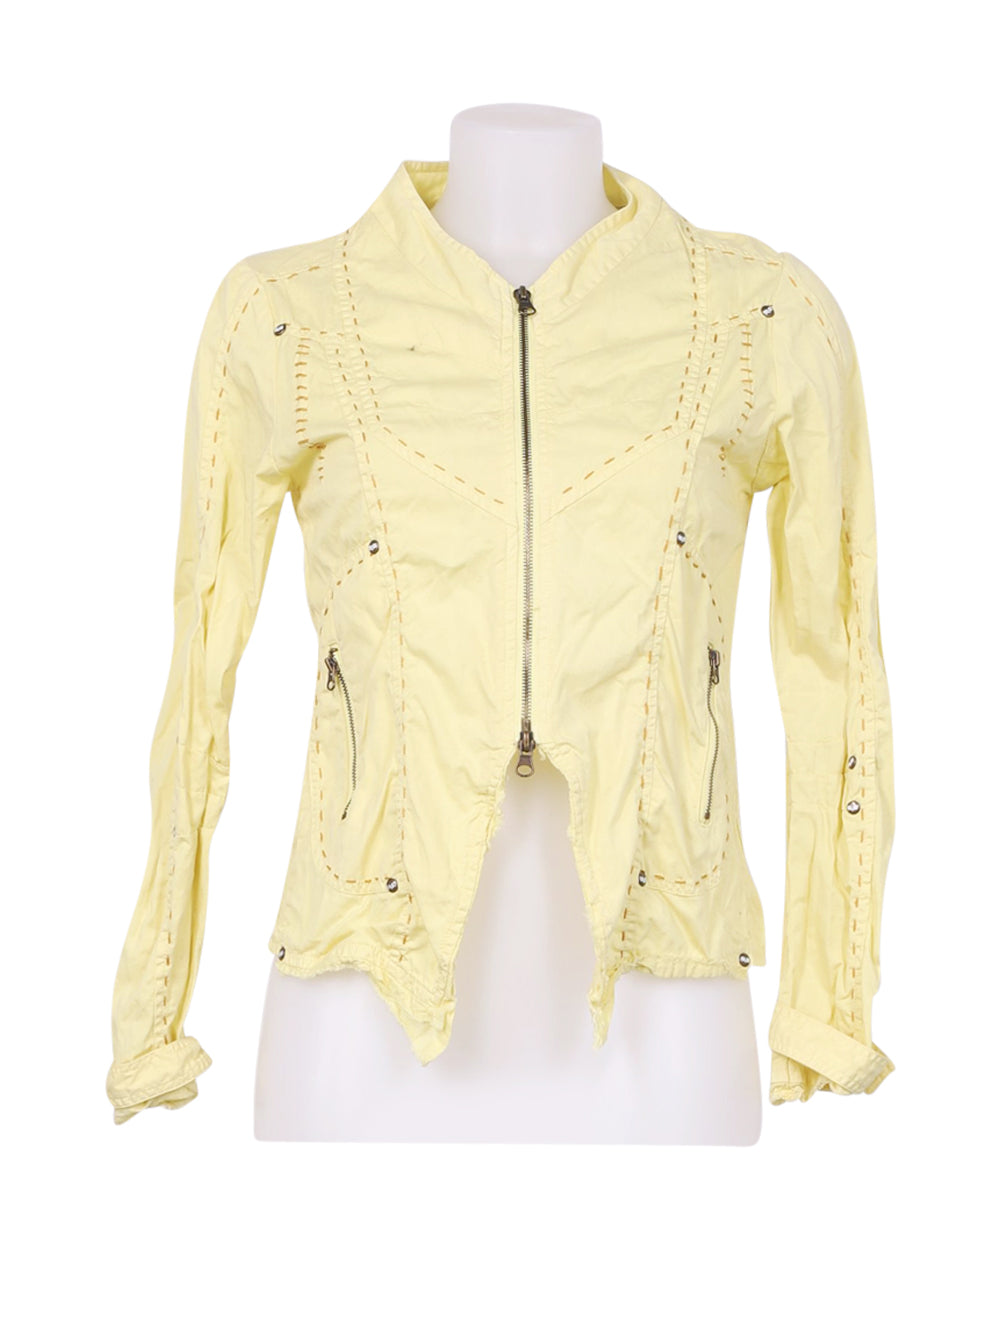 Front photo of Preloved Et compagnie Yellow Woman's jacket - size 8/S